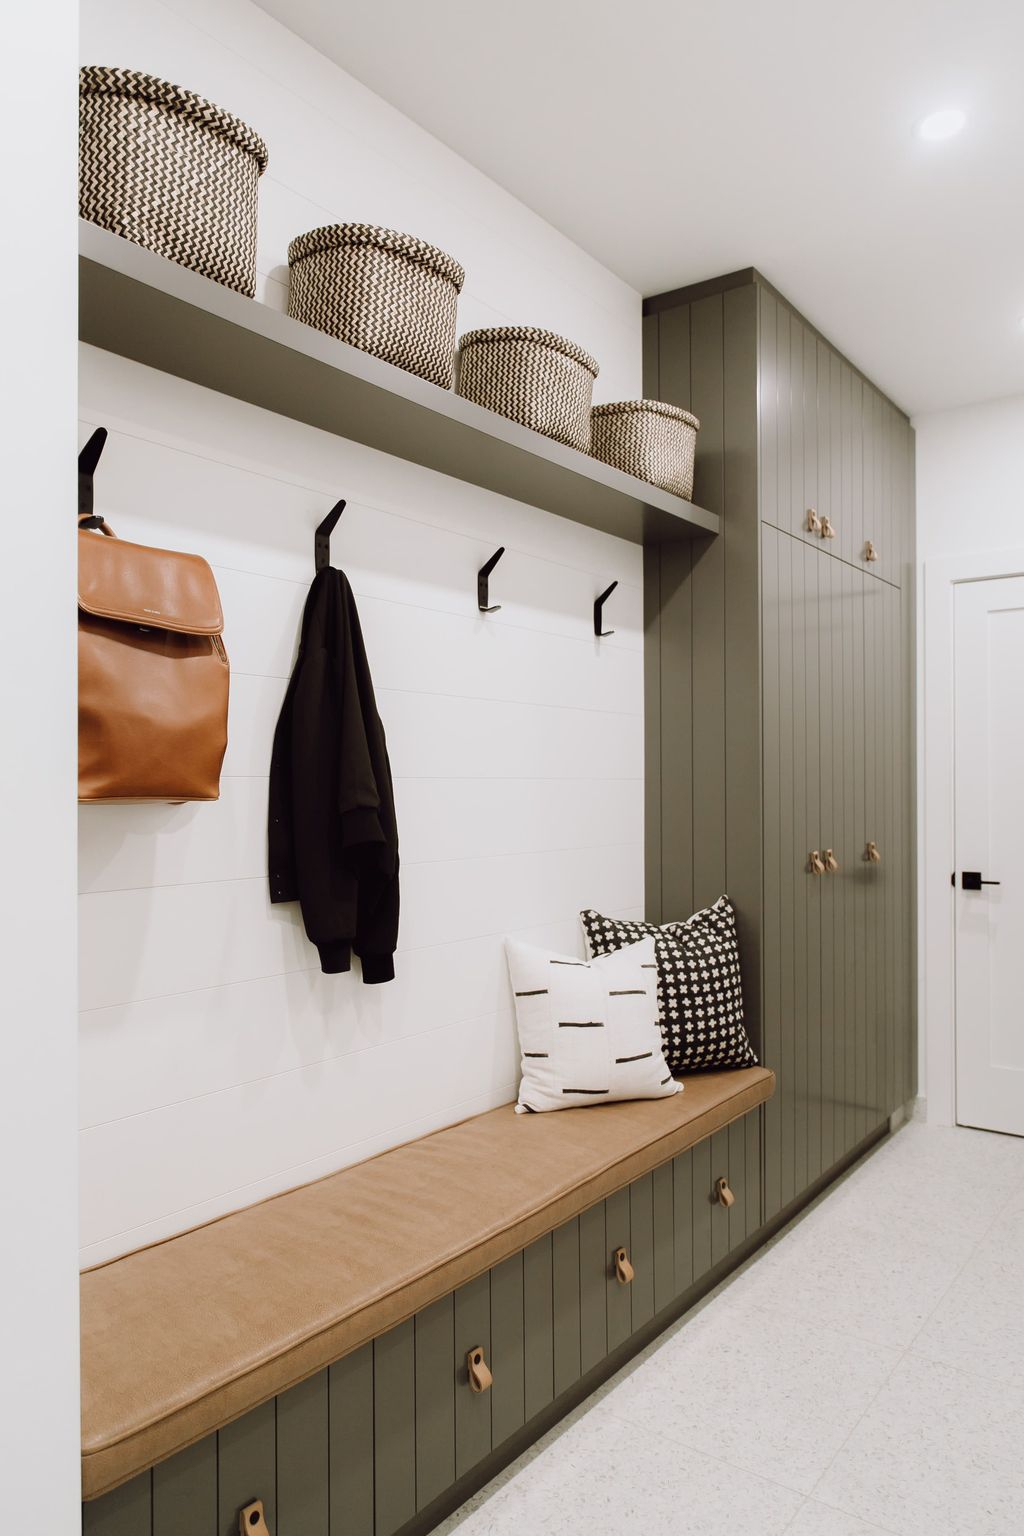 Delightful Mudroom Storage Design Ideas To Have Soon26